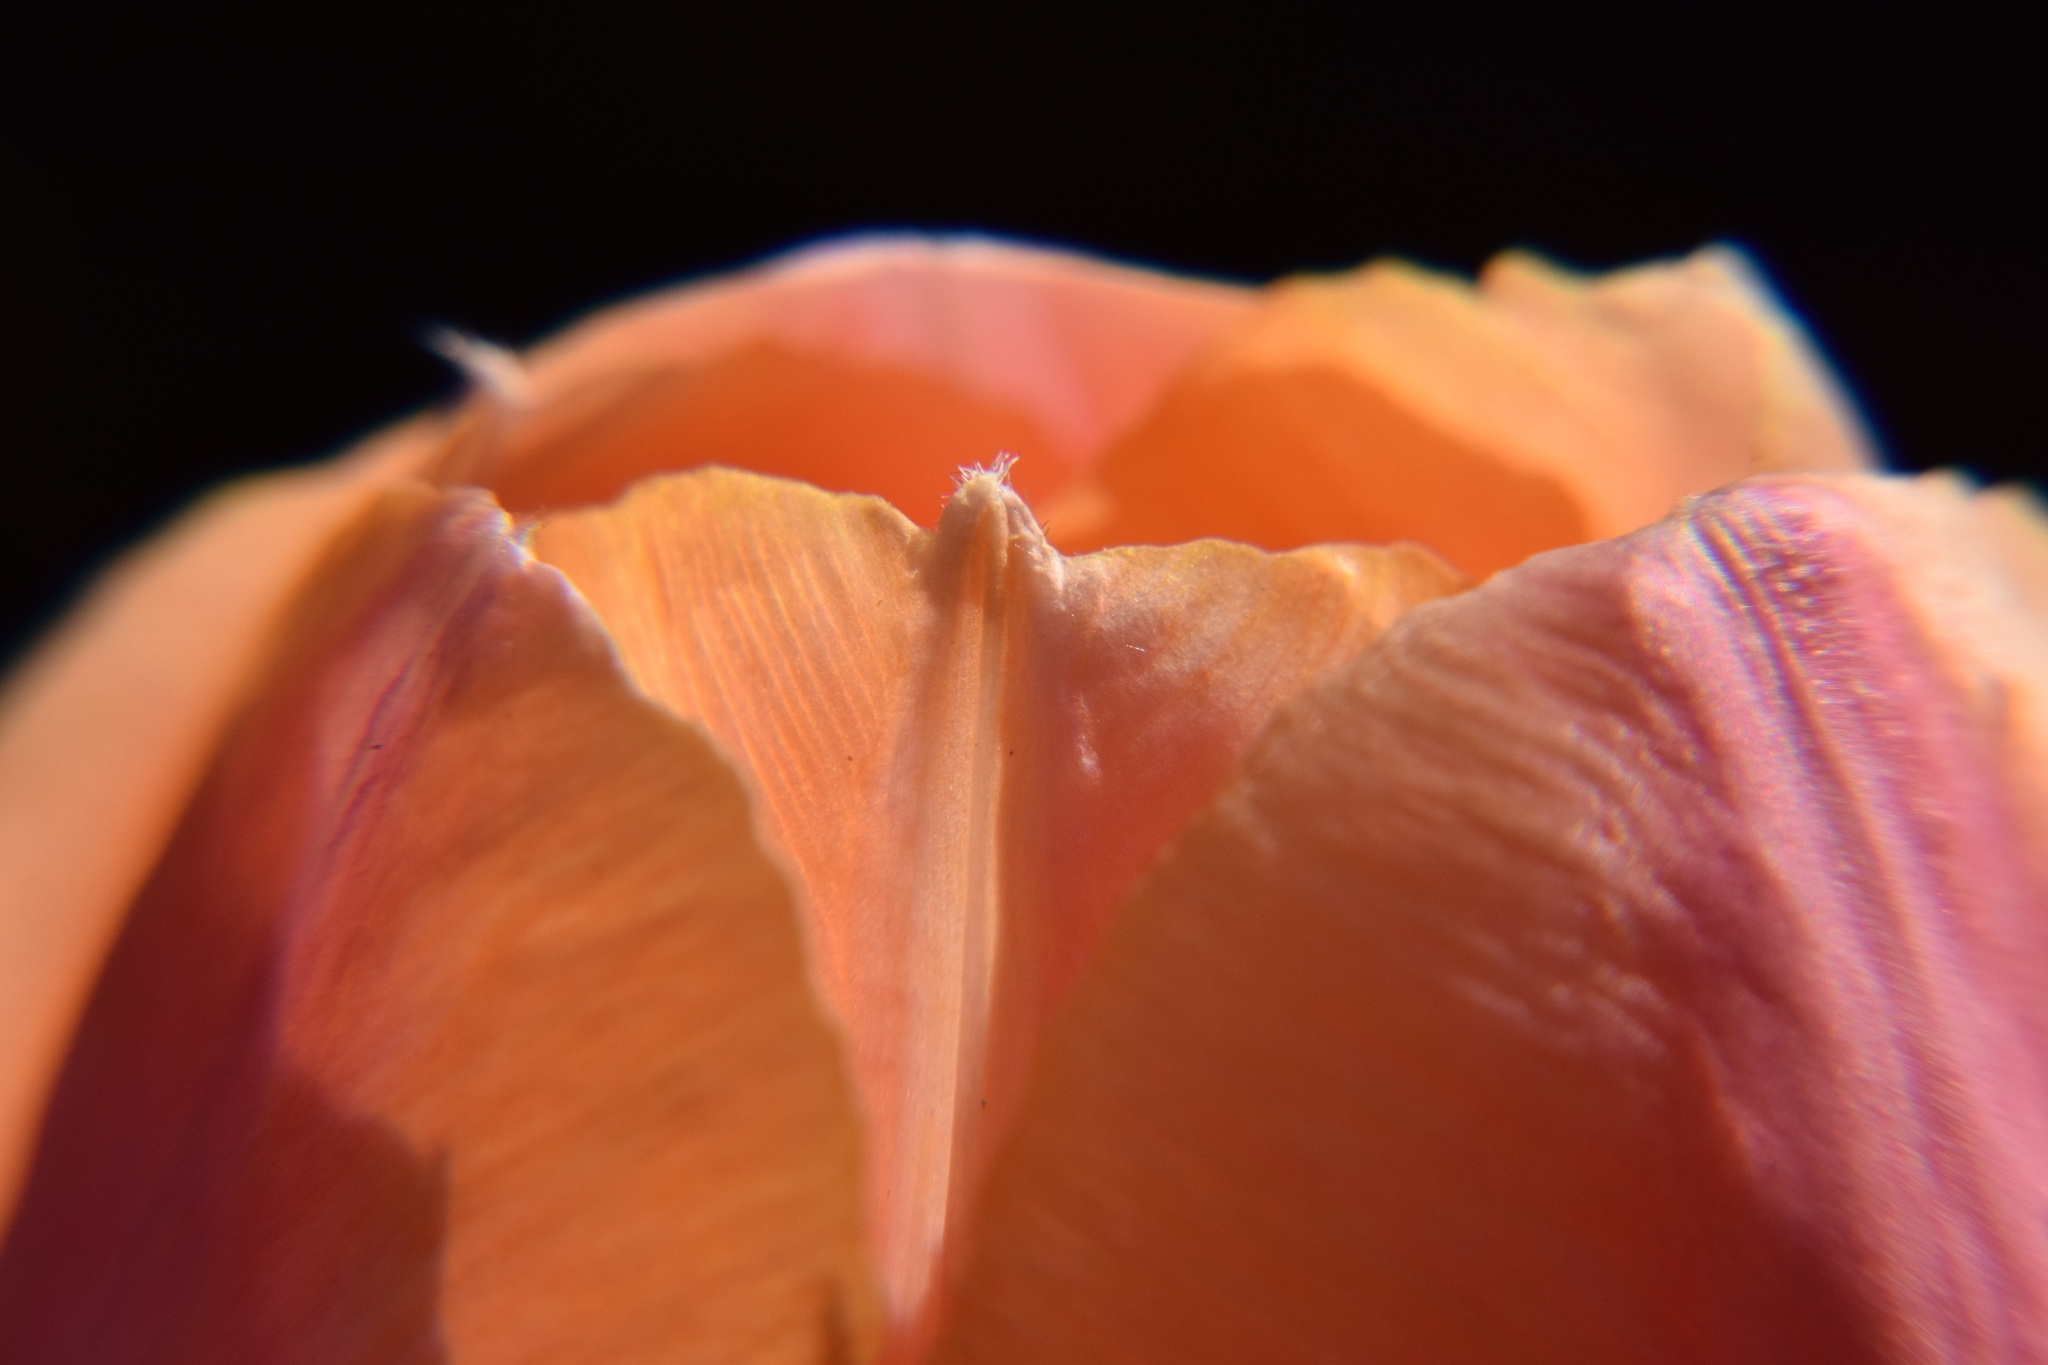 Light on my tulip by LydiaJeanMay